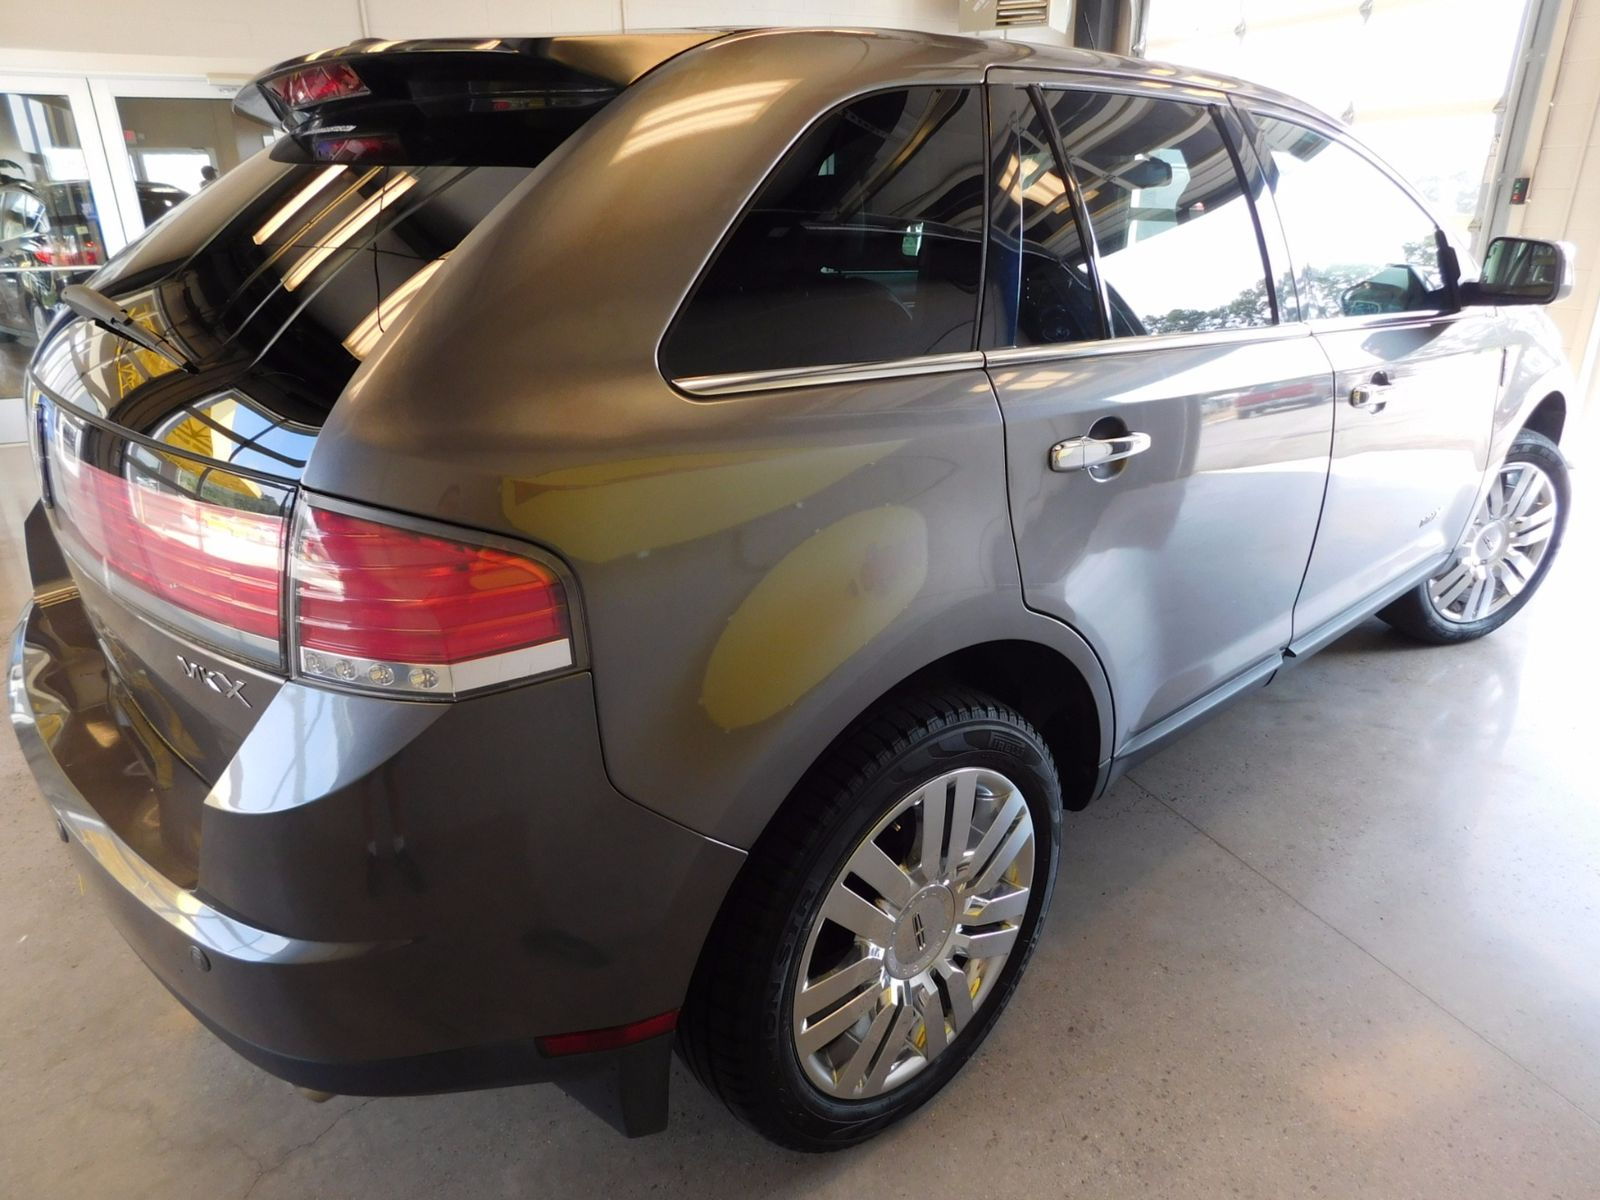 salvage lot auctions auto columbus title carfinder on brown lincoln oh in mkx of en sale online copart cert